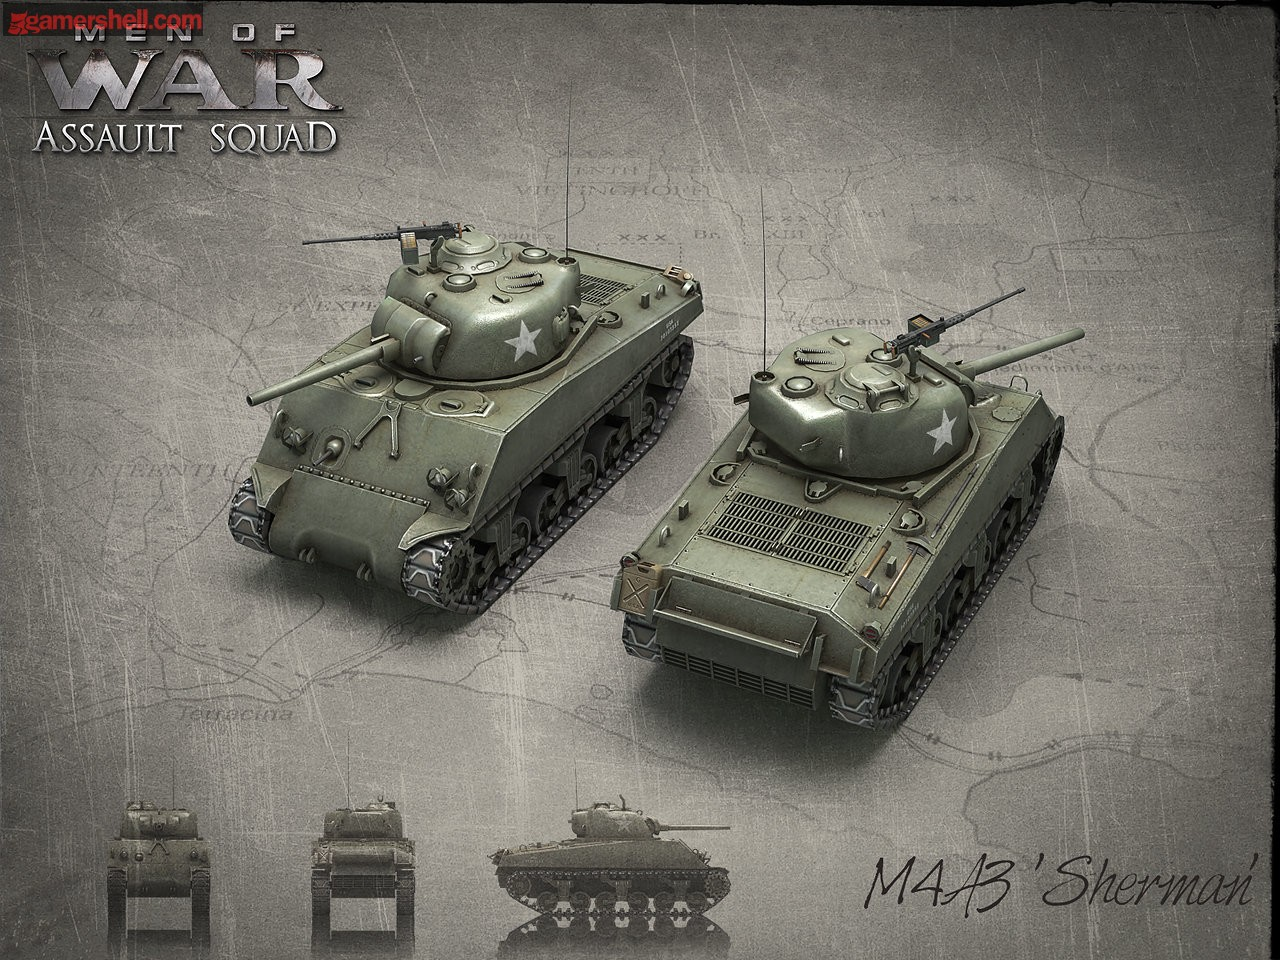 Habemus beta abierto de Men of War: Assault Squad [Gratis!]